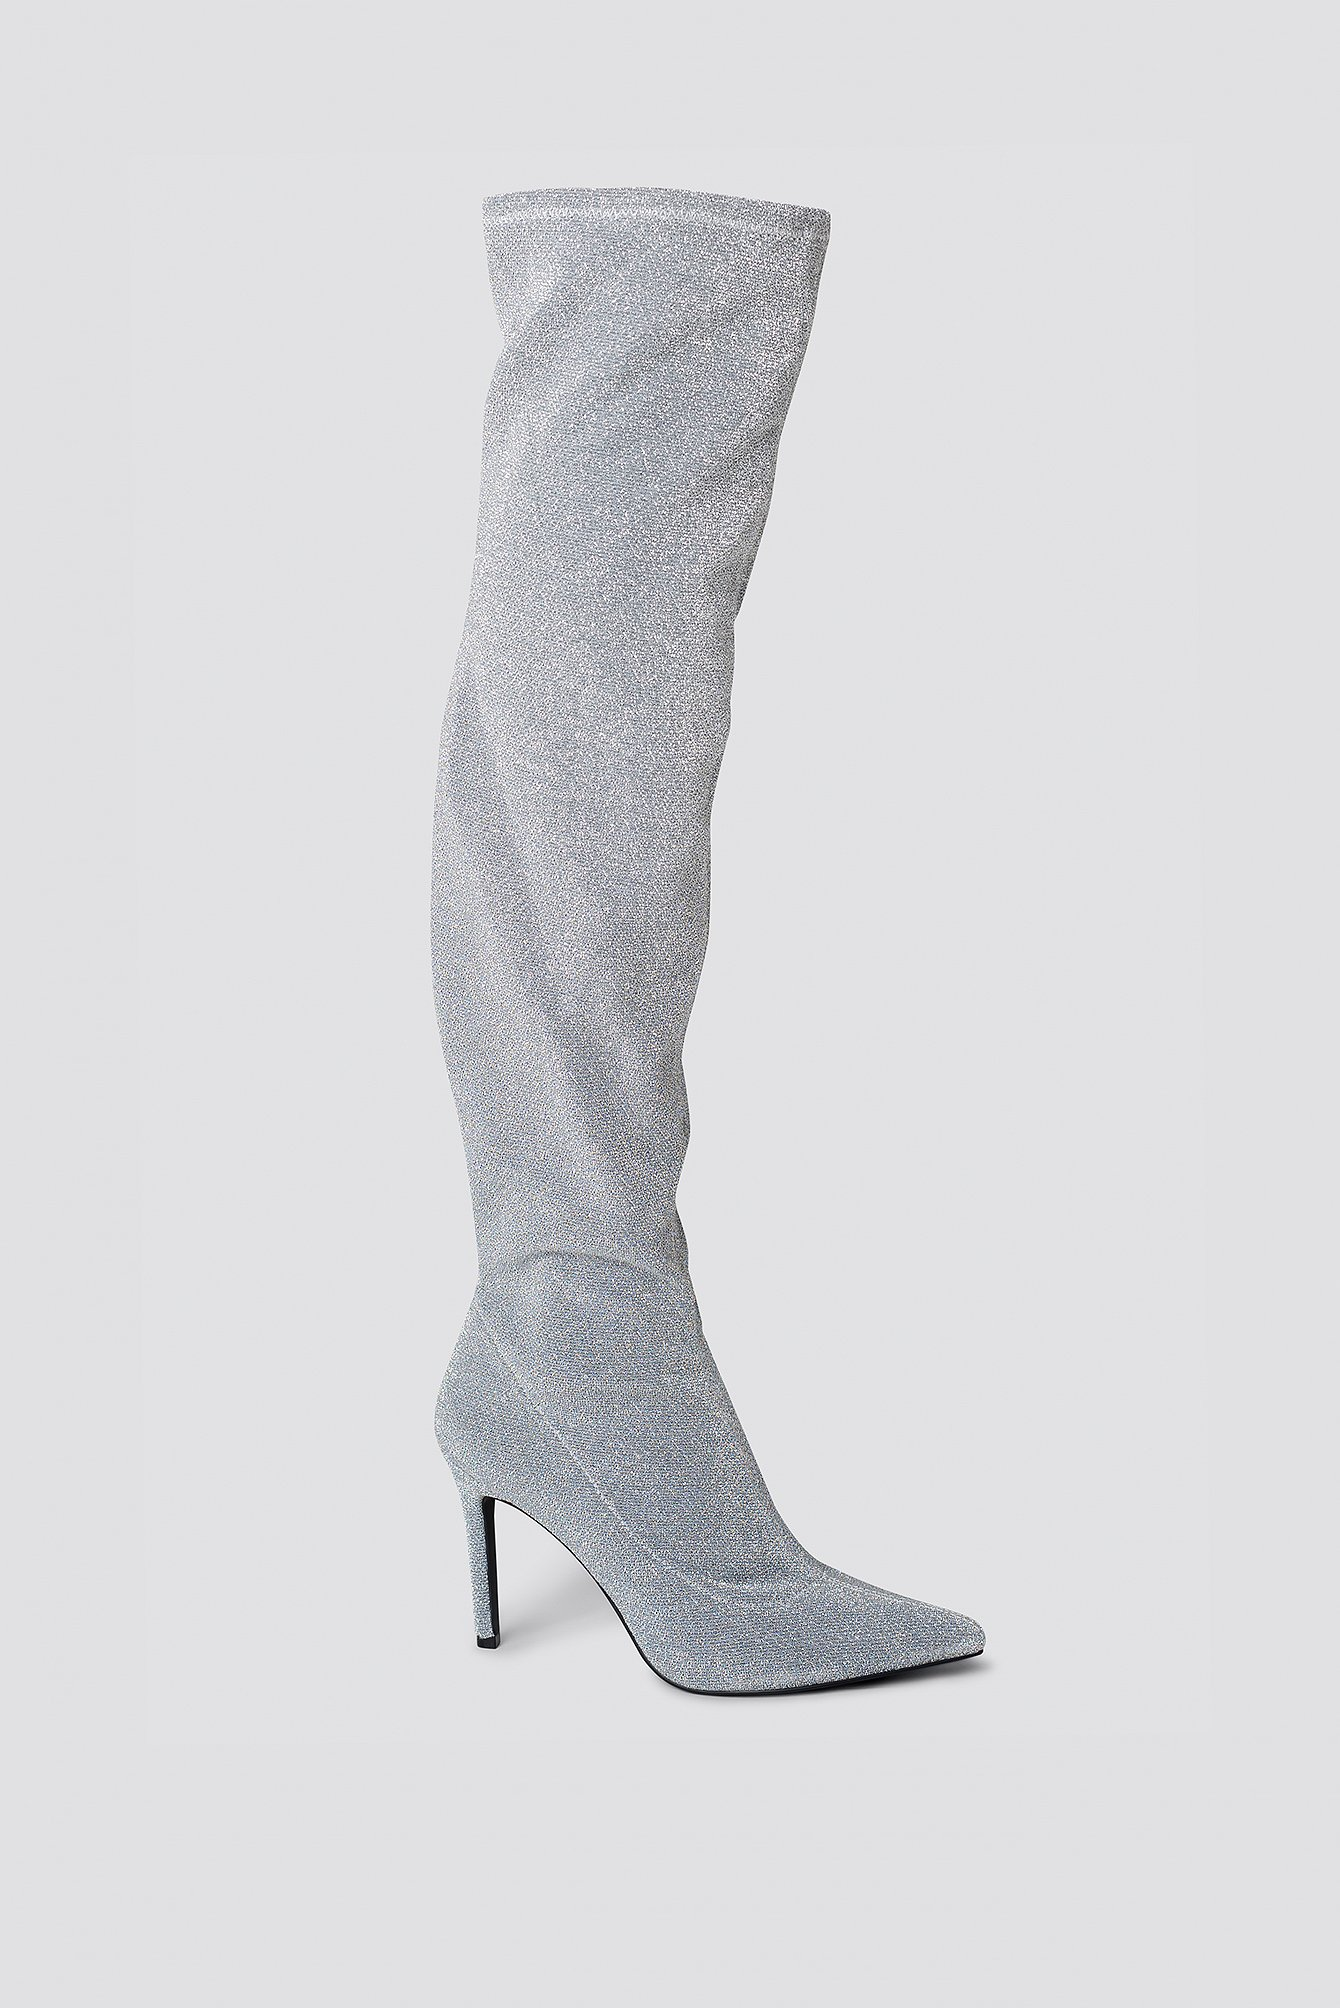 NA-KD Lurex Overknee Boots - Silver MGyW35H